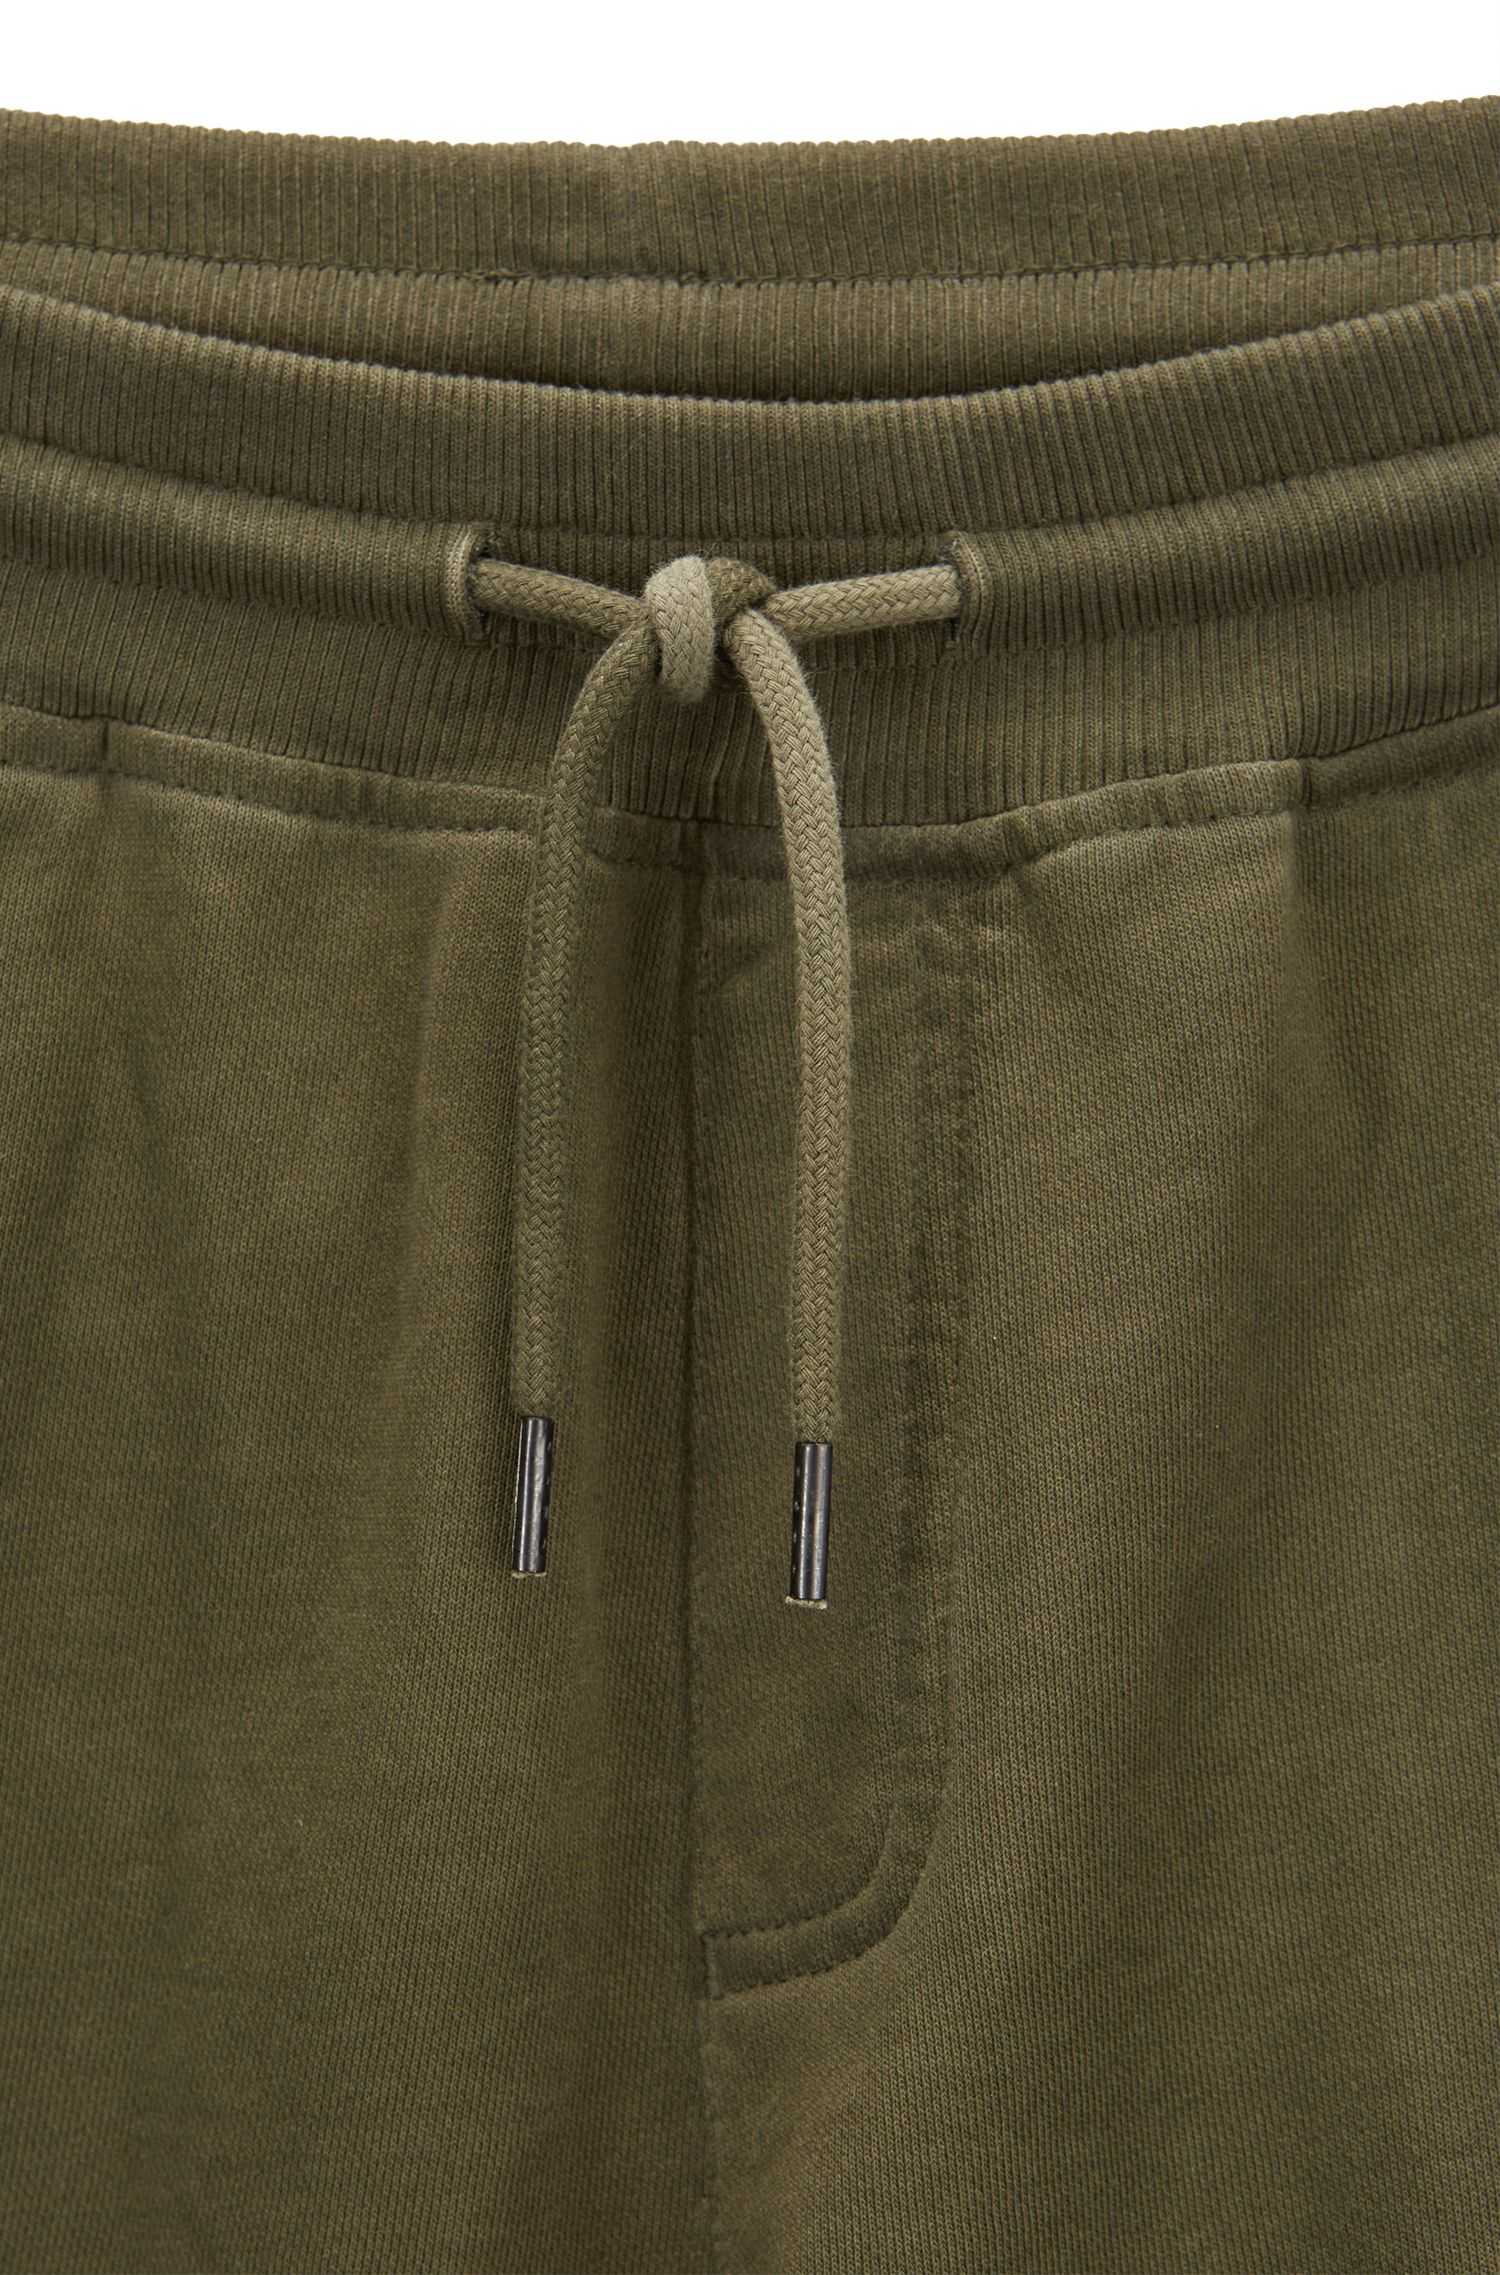 Regular-fit shorts in garment-dyed French terry